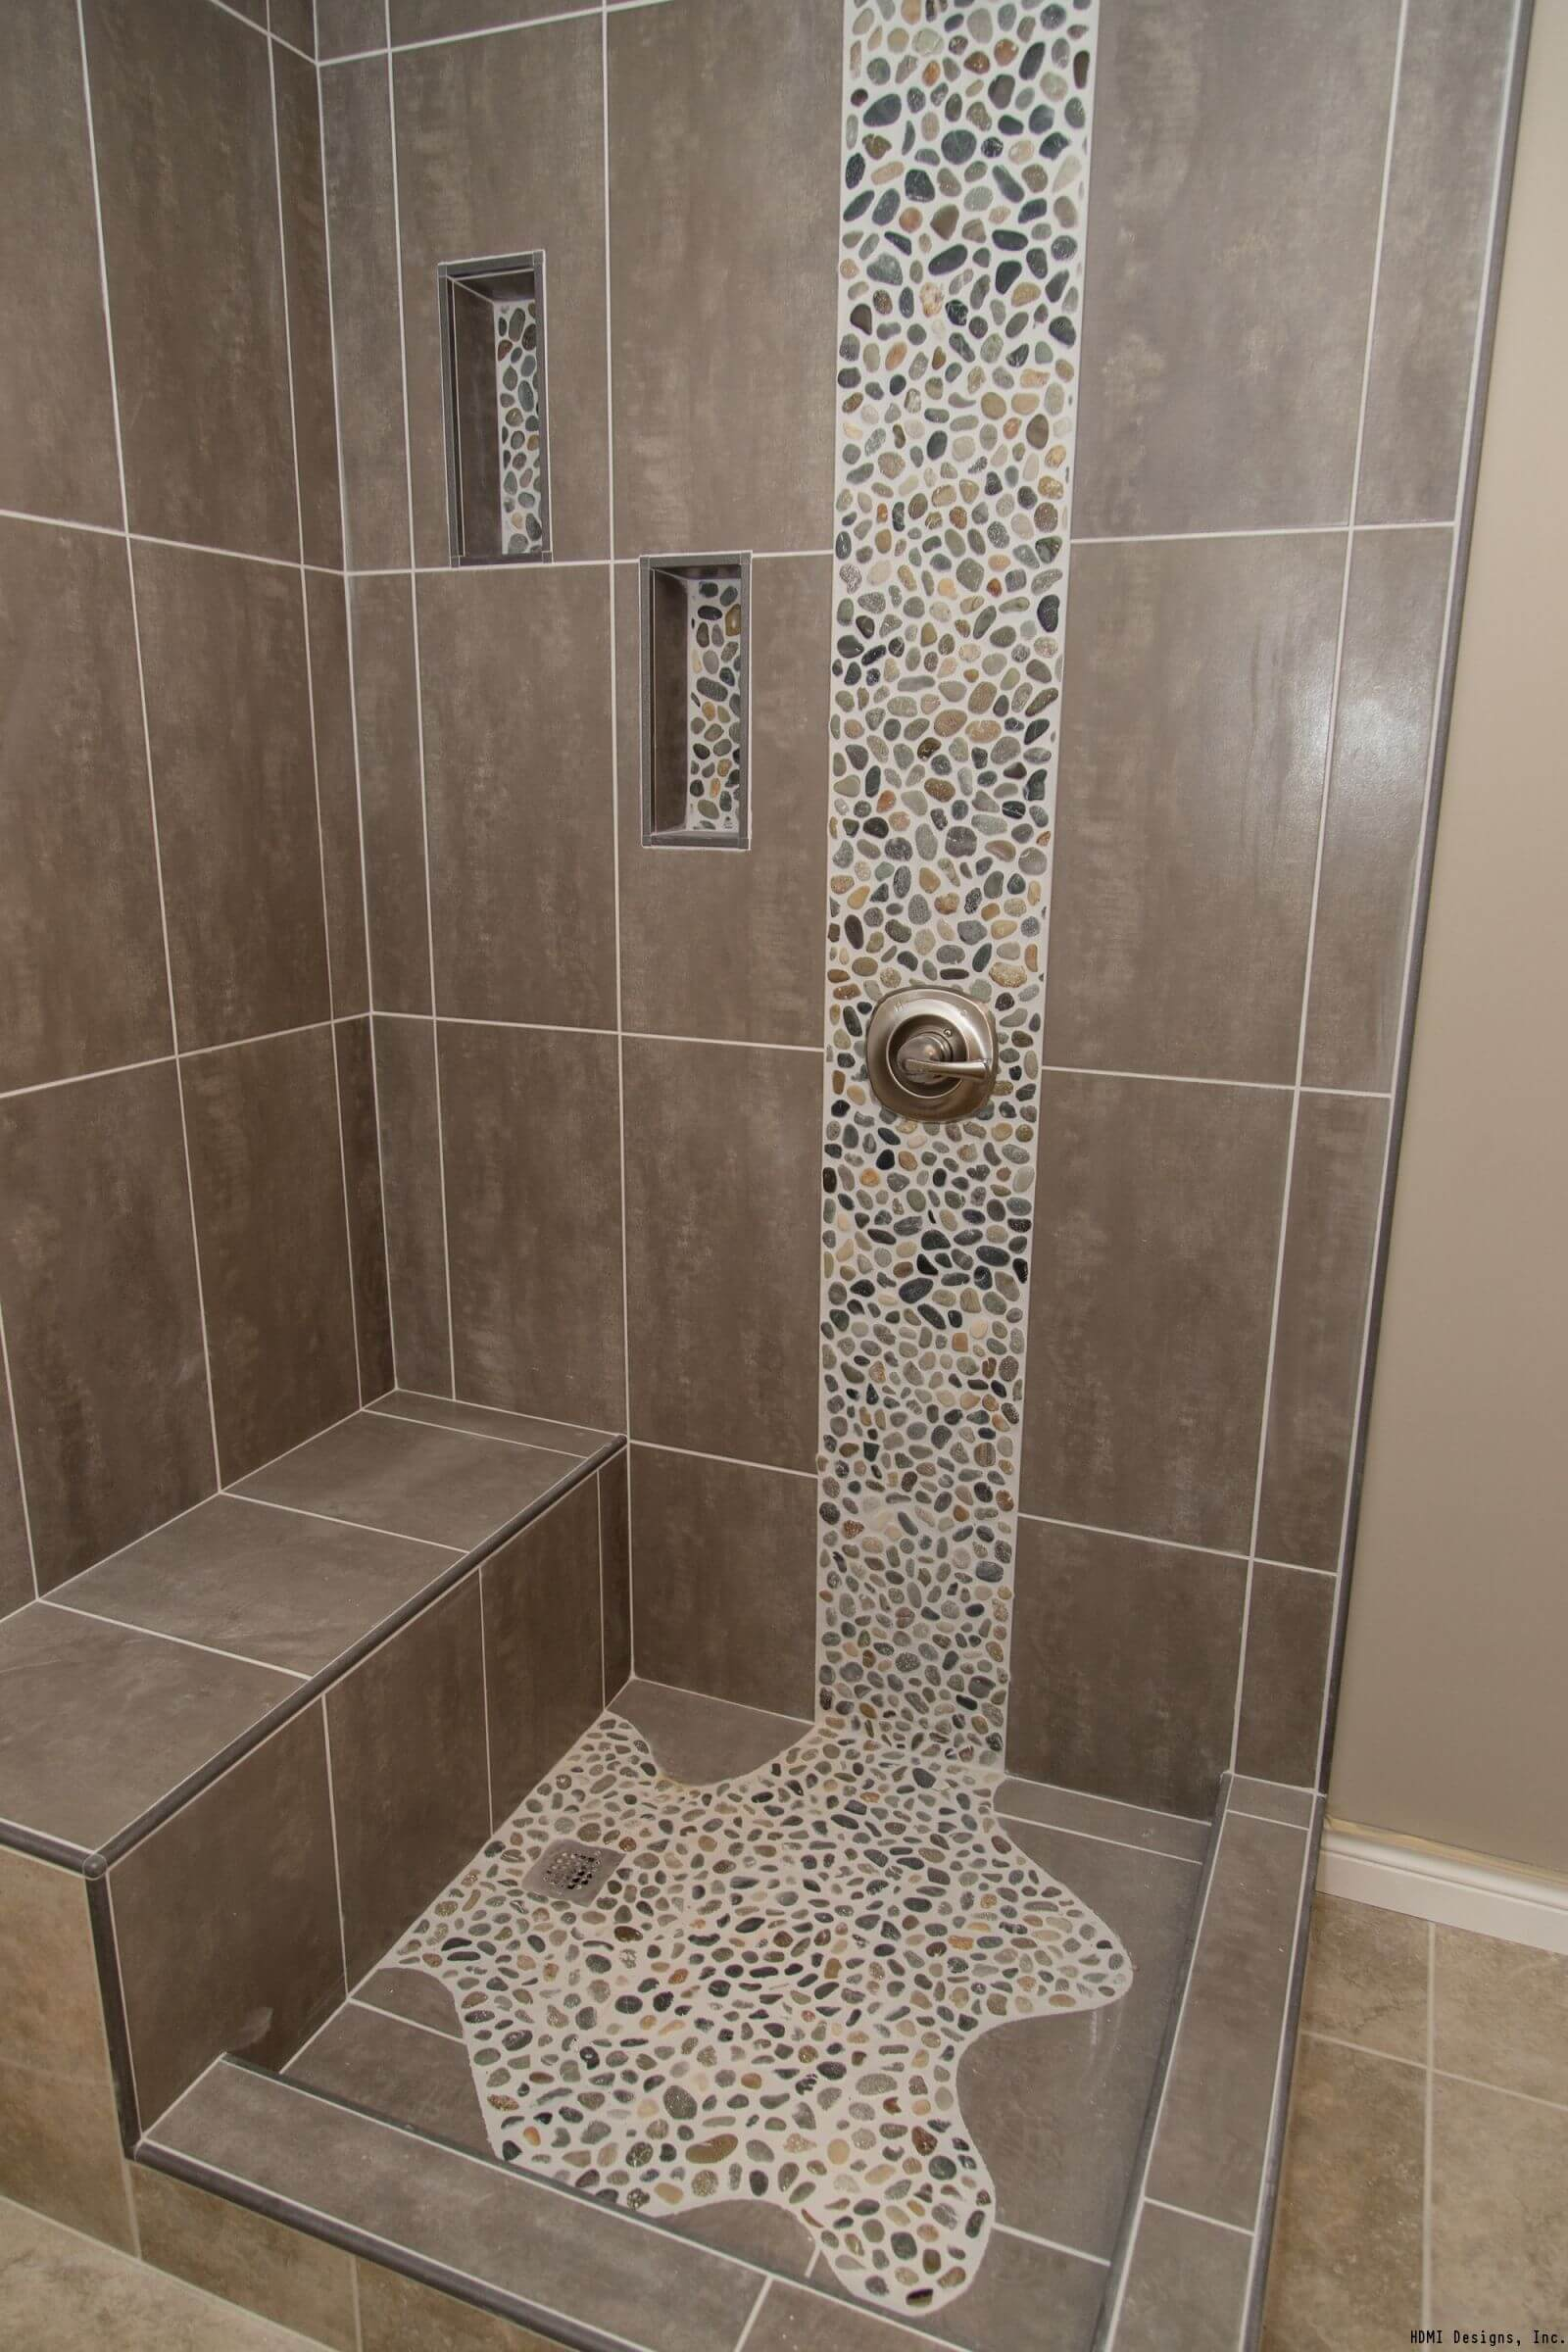 Bathroom shower floor tile ideas bathroom design ideas Bathroom shower tile designs